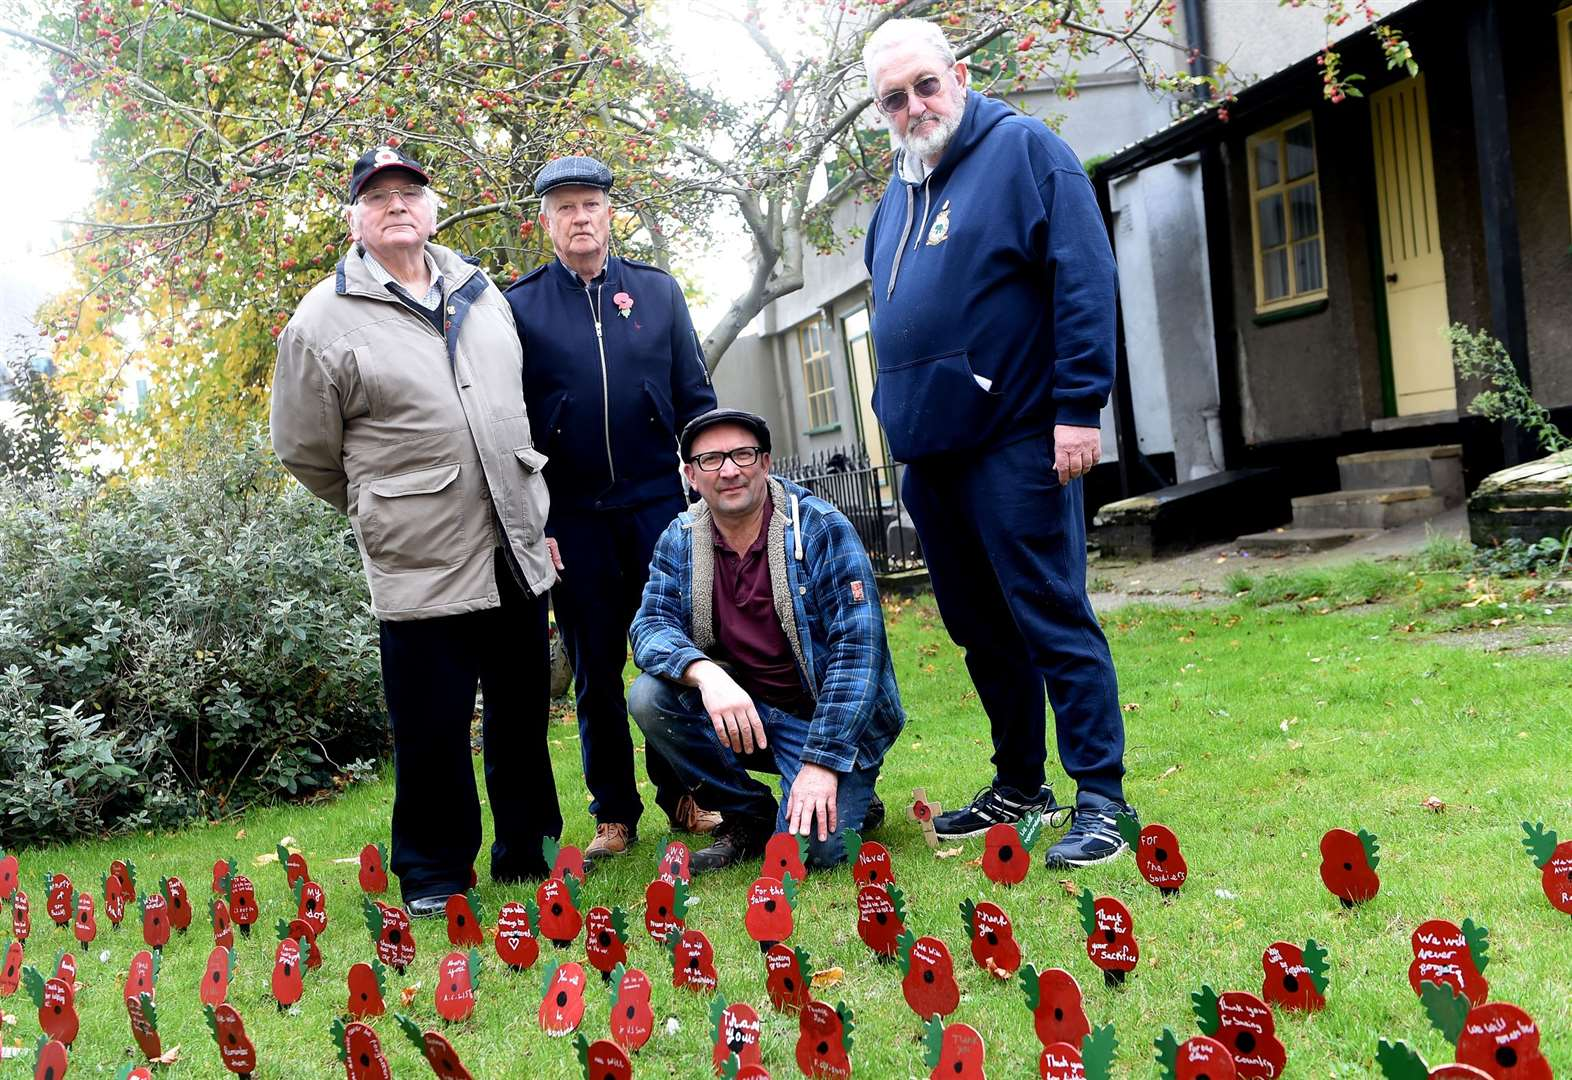 Vandals strike at commemorative poppy display